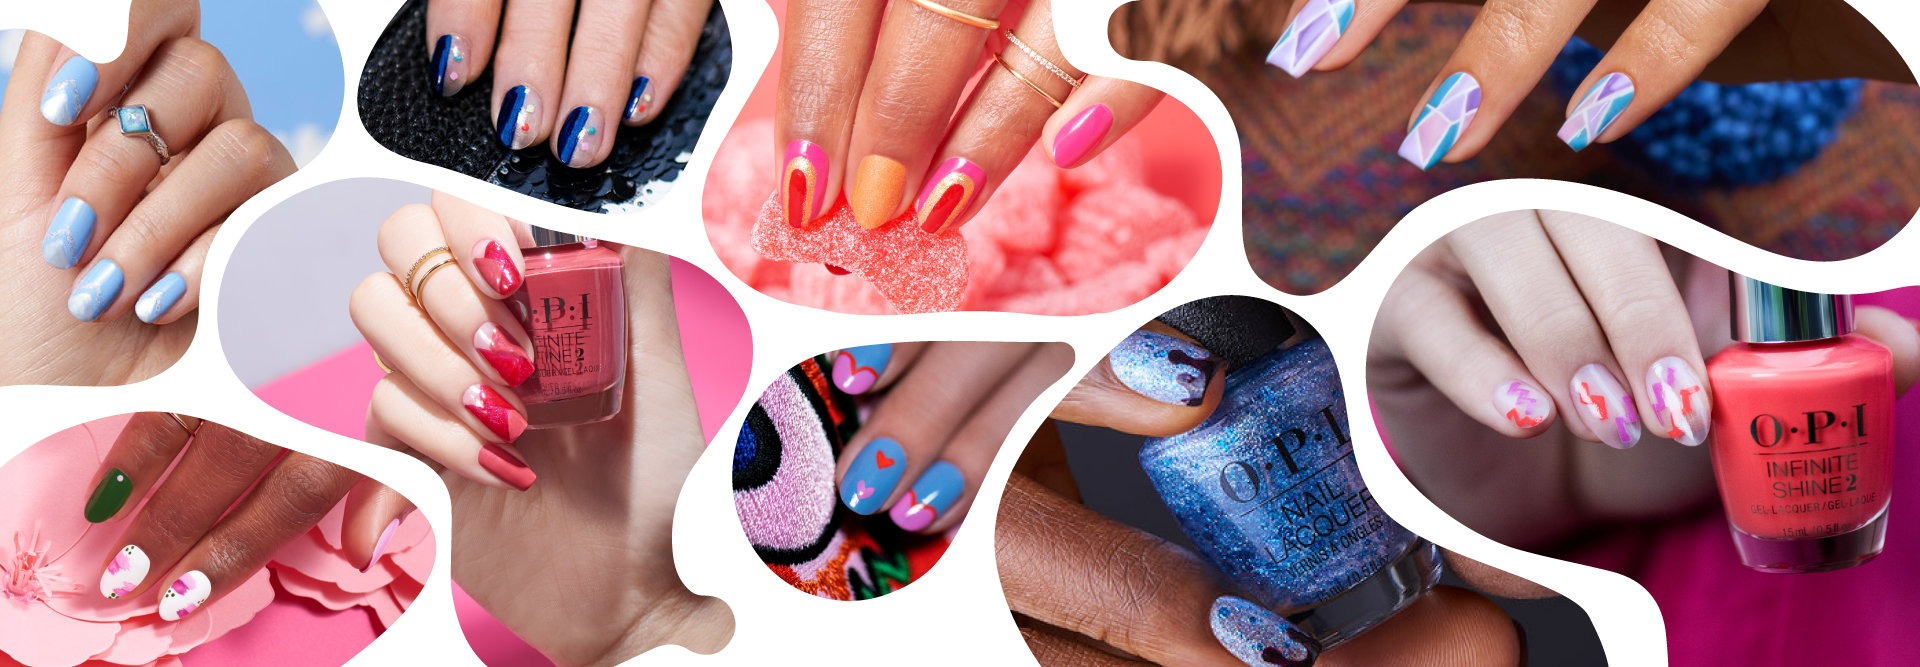 OPI nail art tutorials